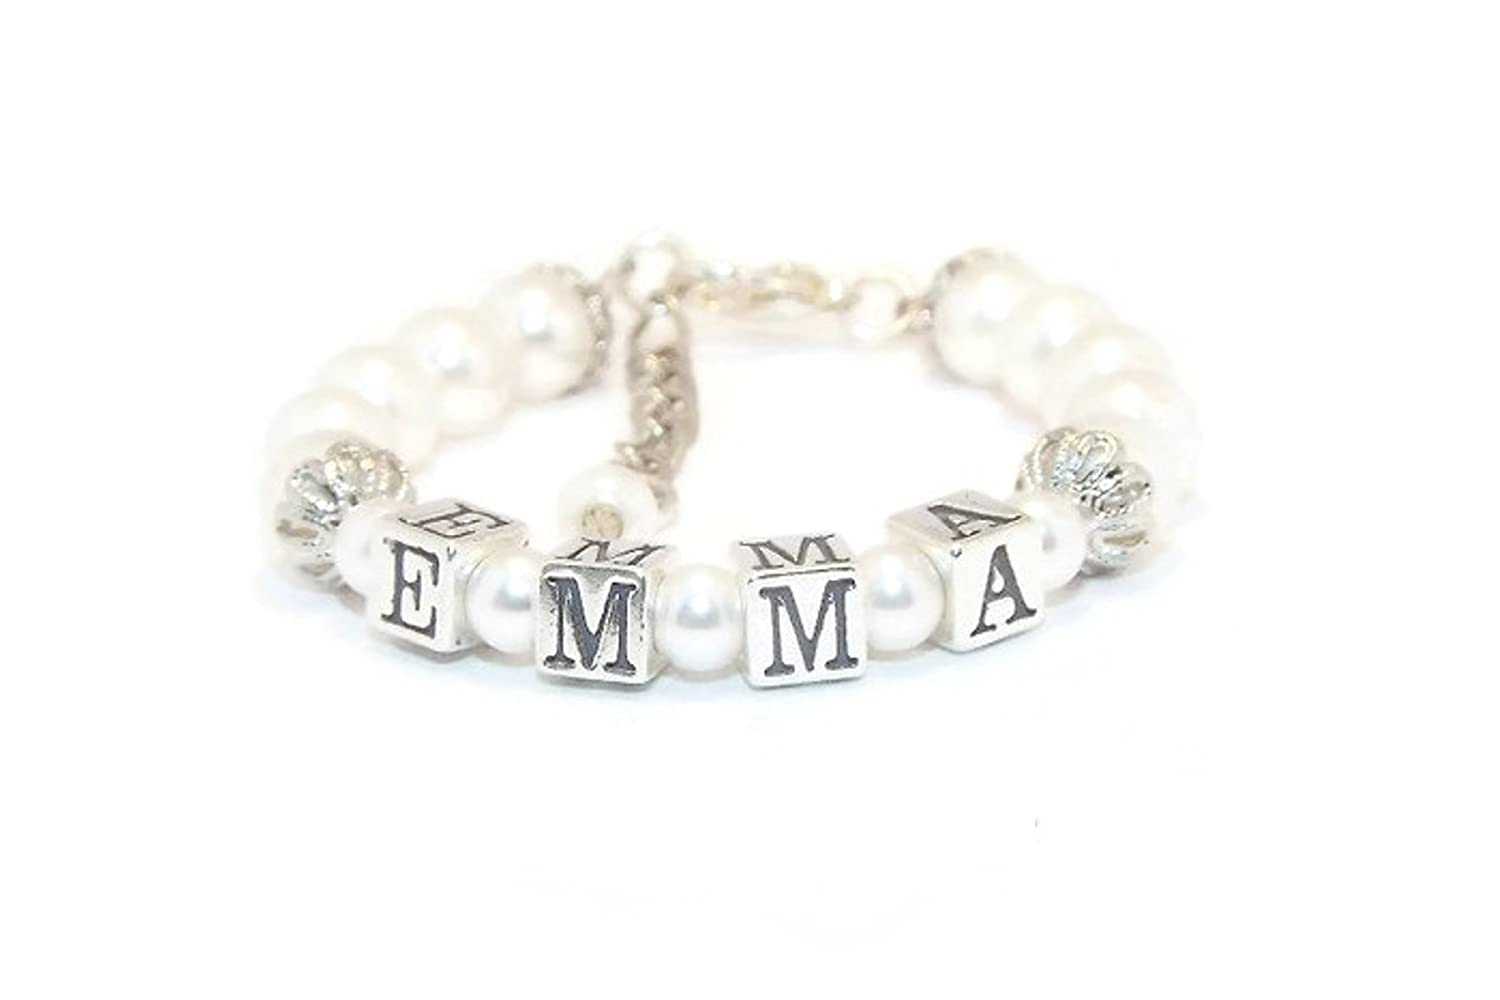 B0158WEQKO Personalized Girl Pearl Name Bracelet Baby Shower Gift Christening Baptism First Communtion 61S8H062FWL